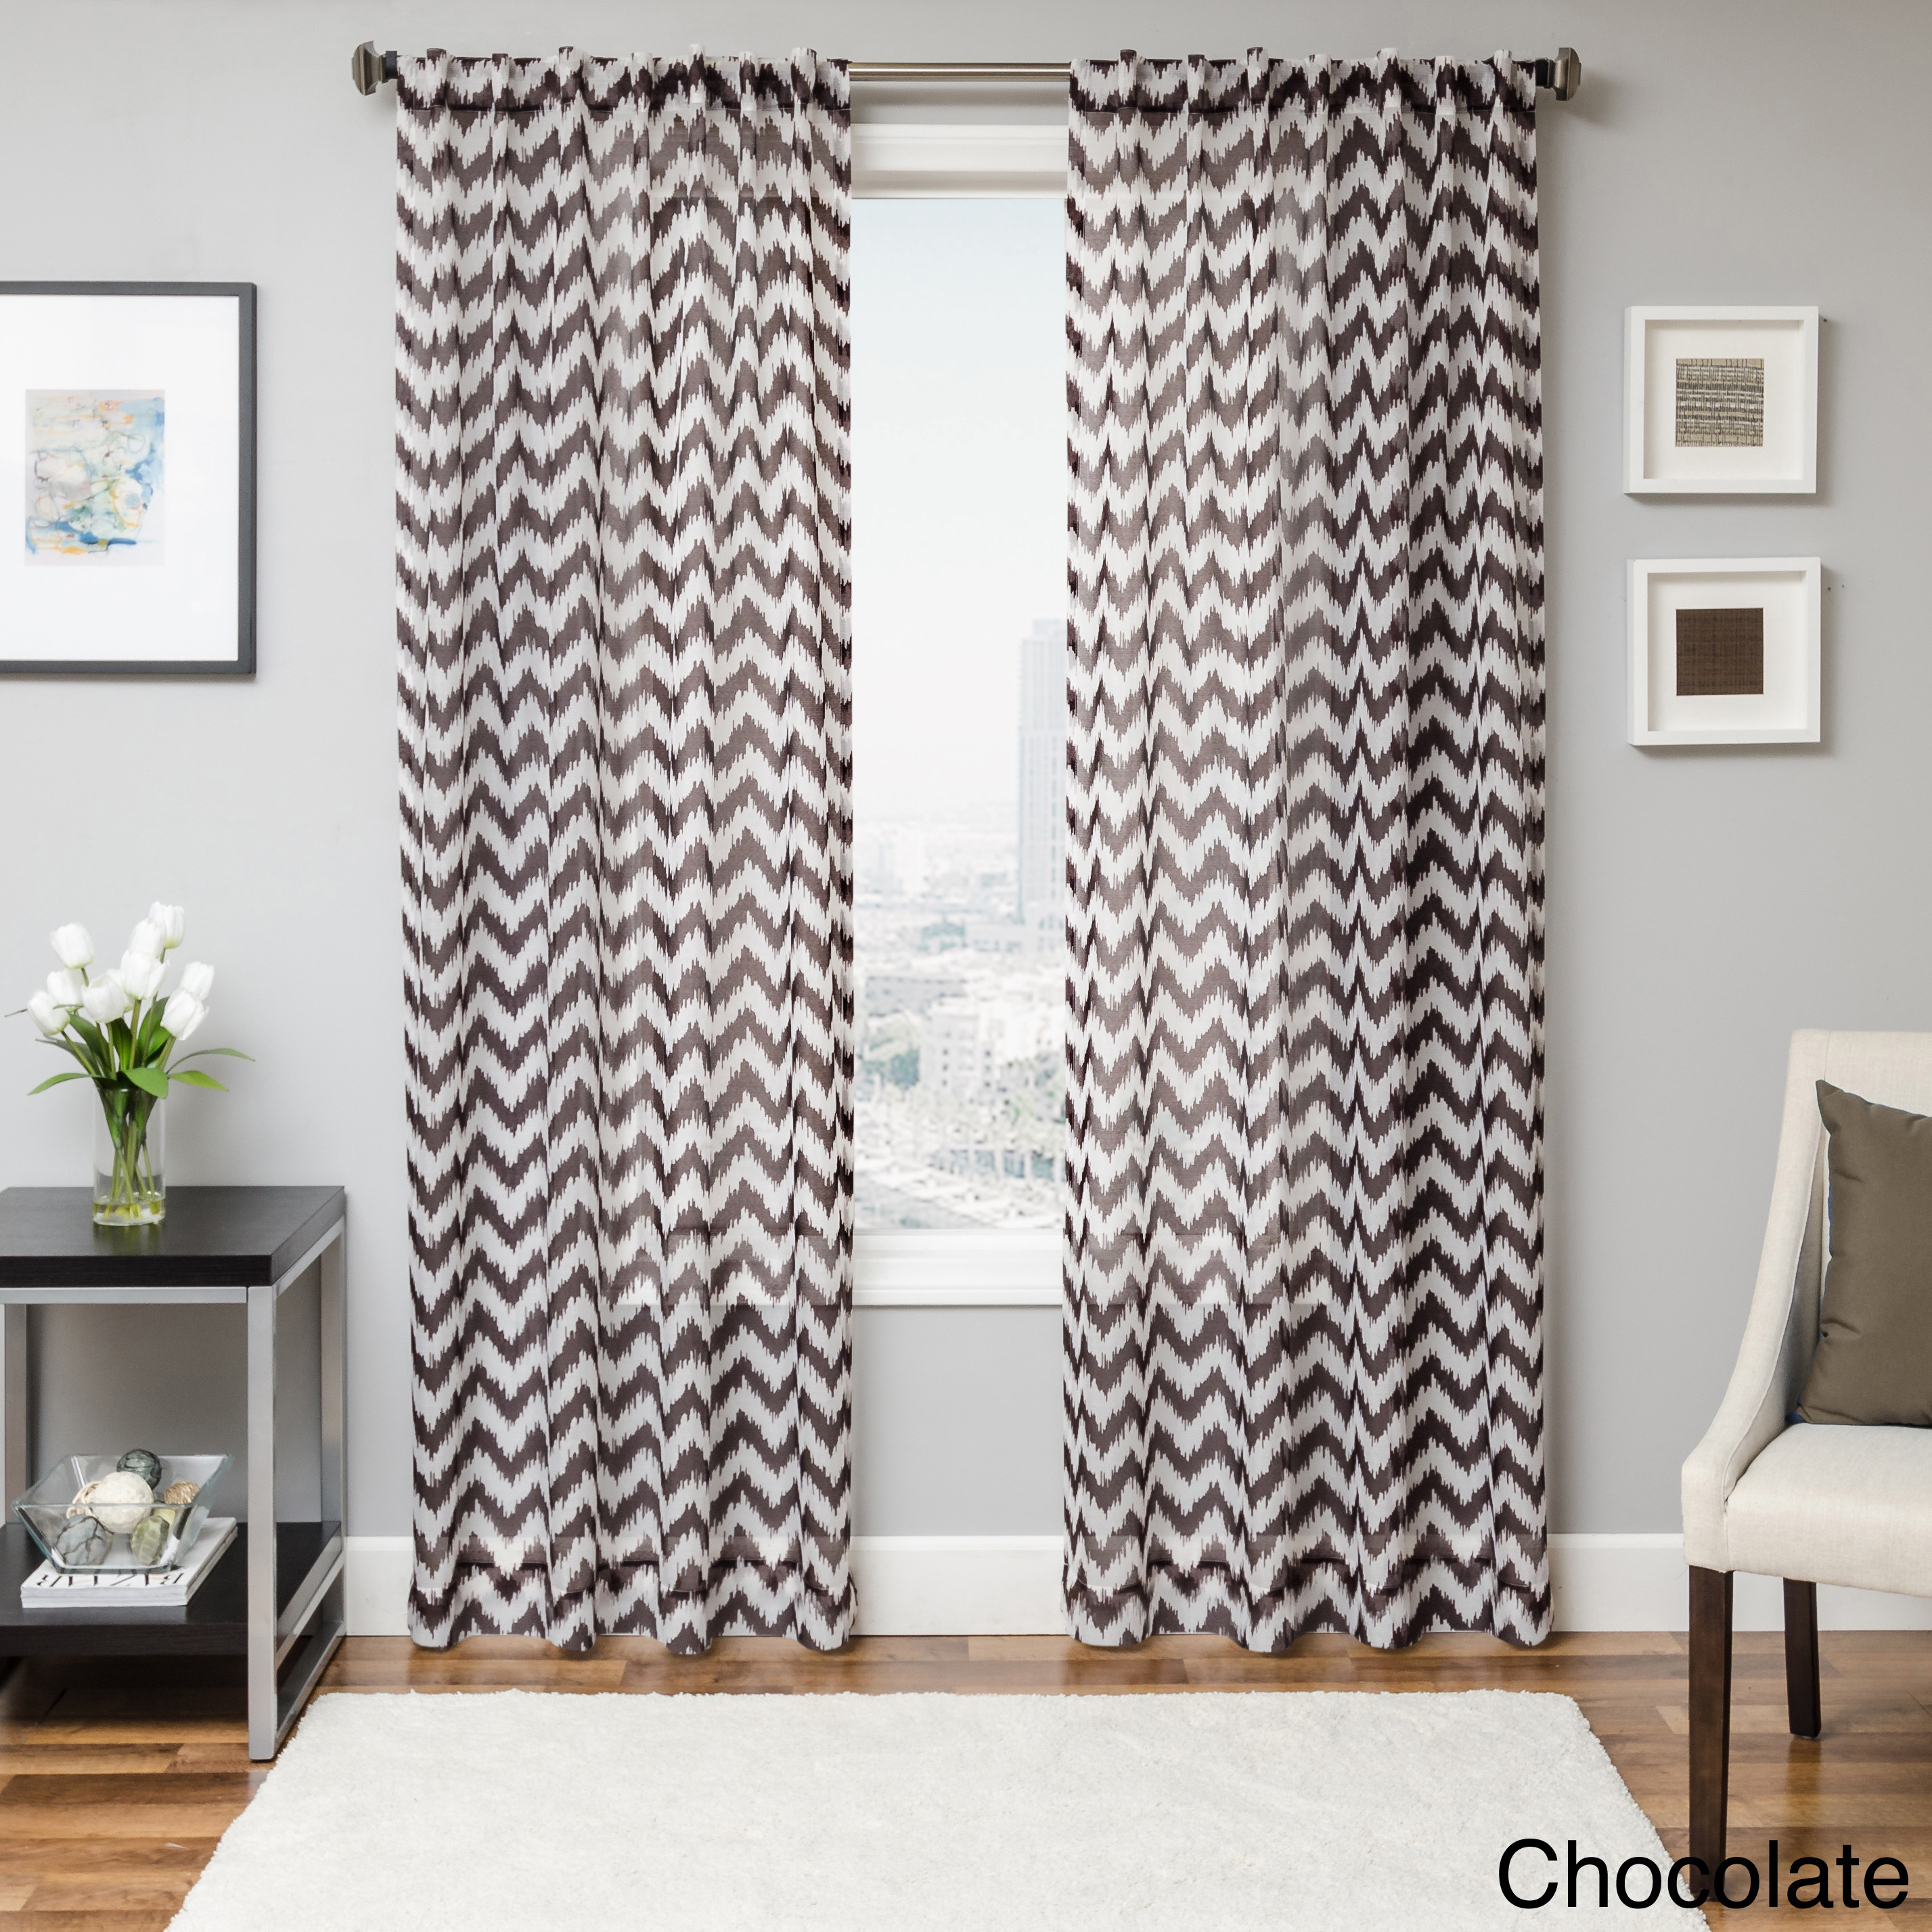 Grey Chevron Curtains matched with grey wall and pictures plus white sofa and white carpet